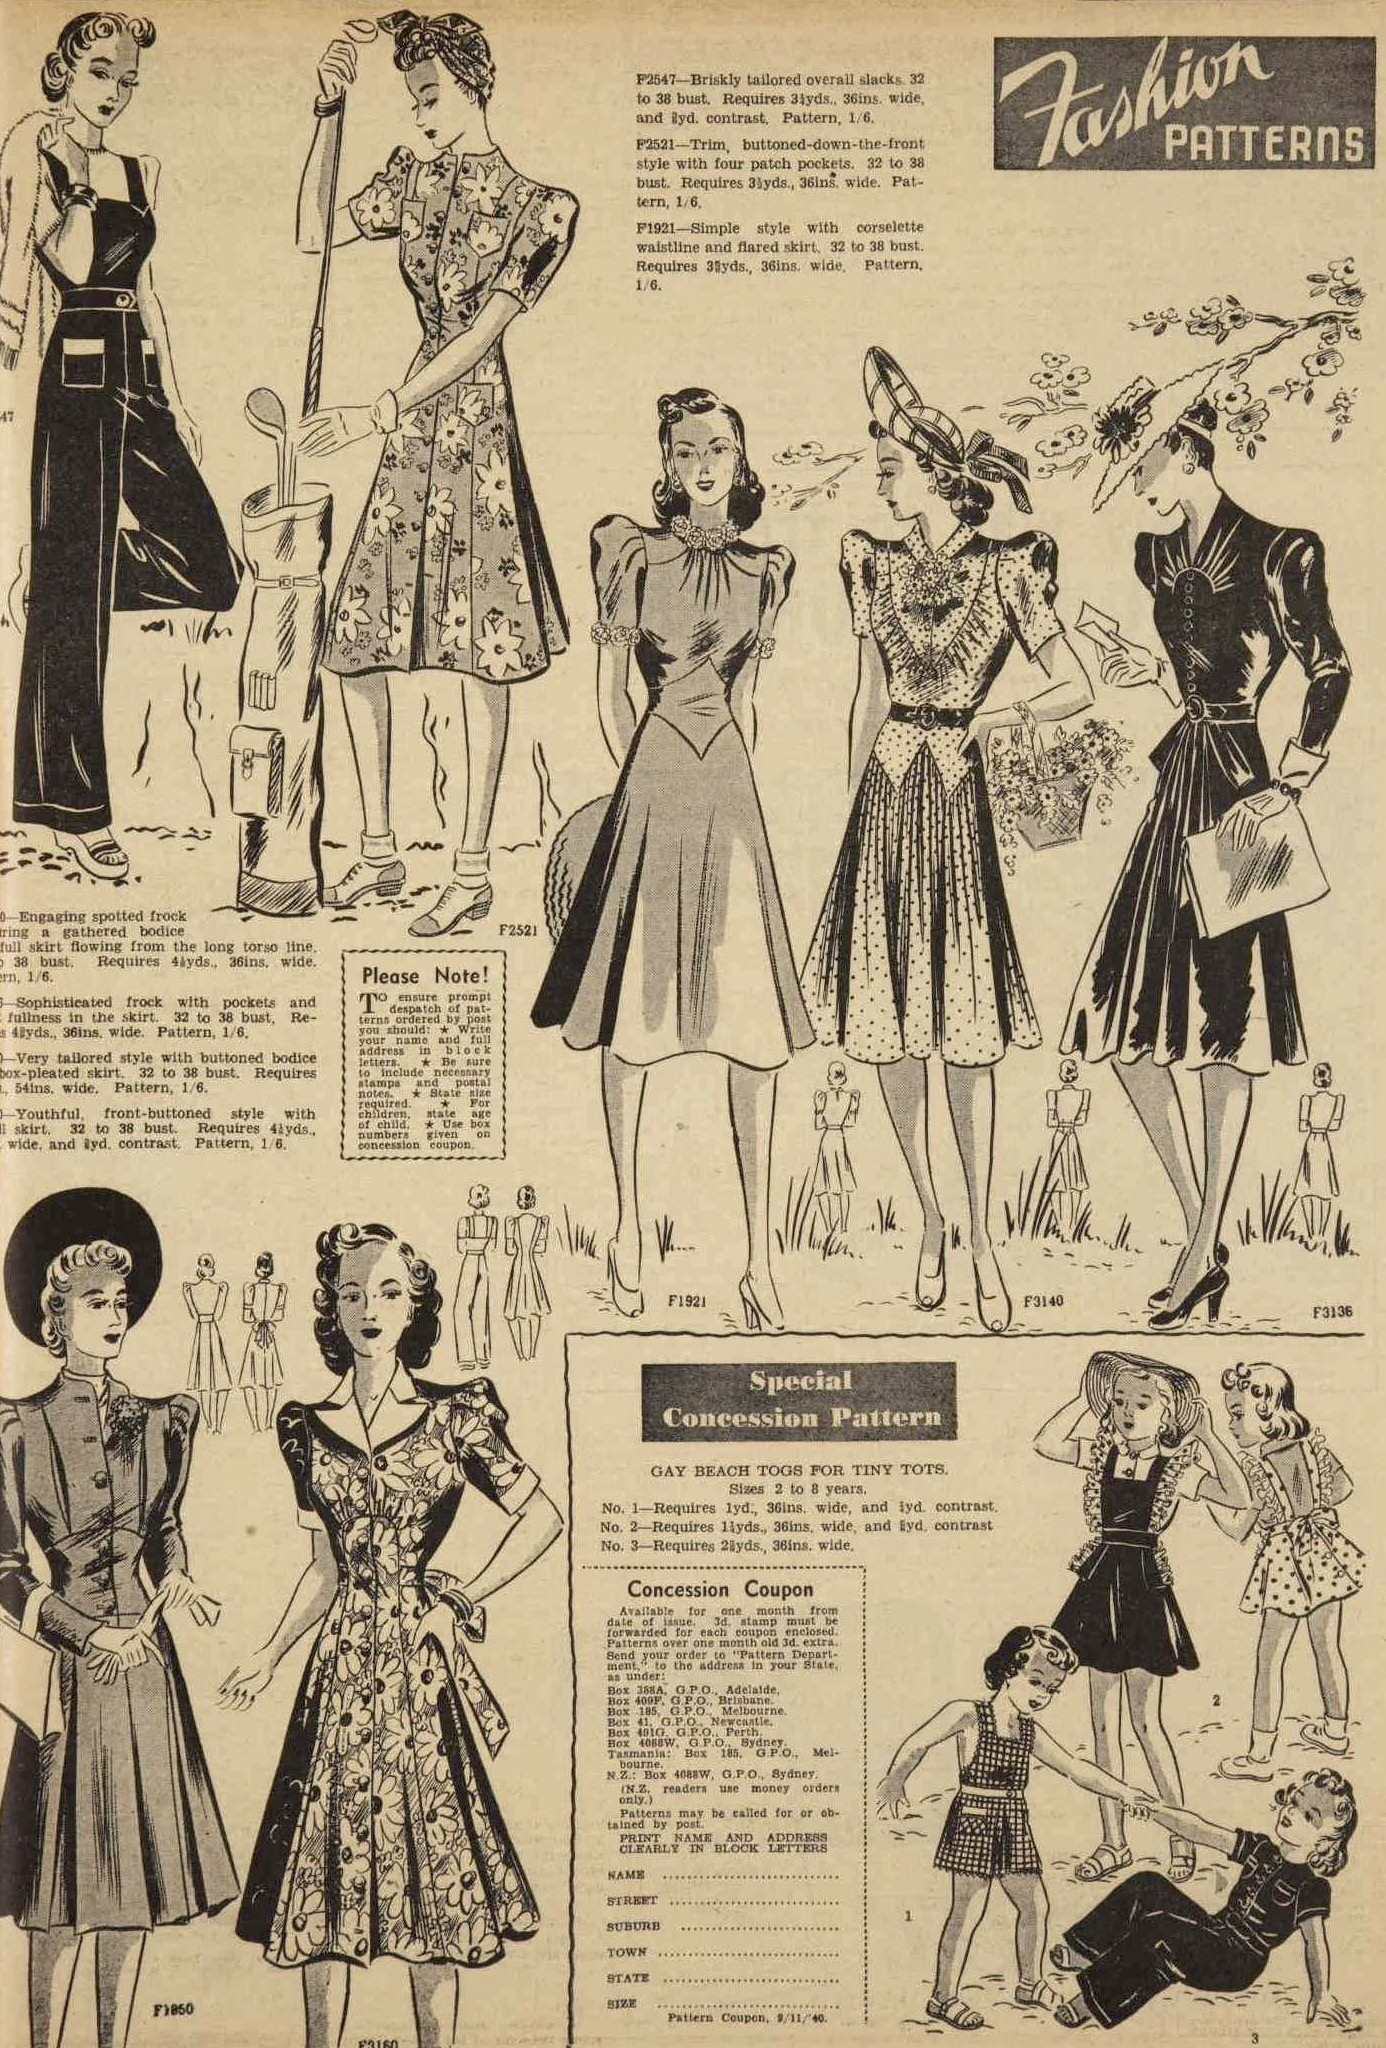 fashions from 1940